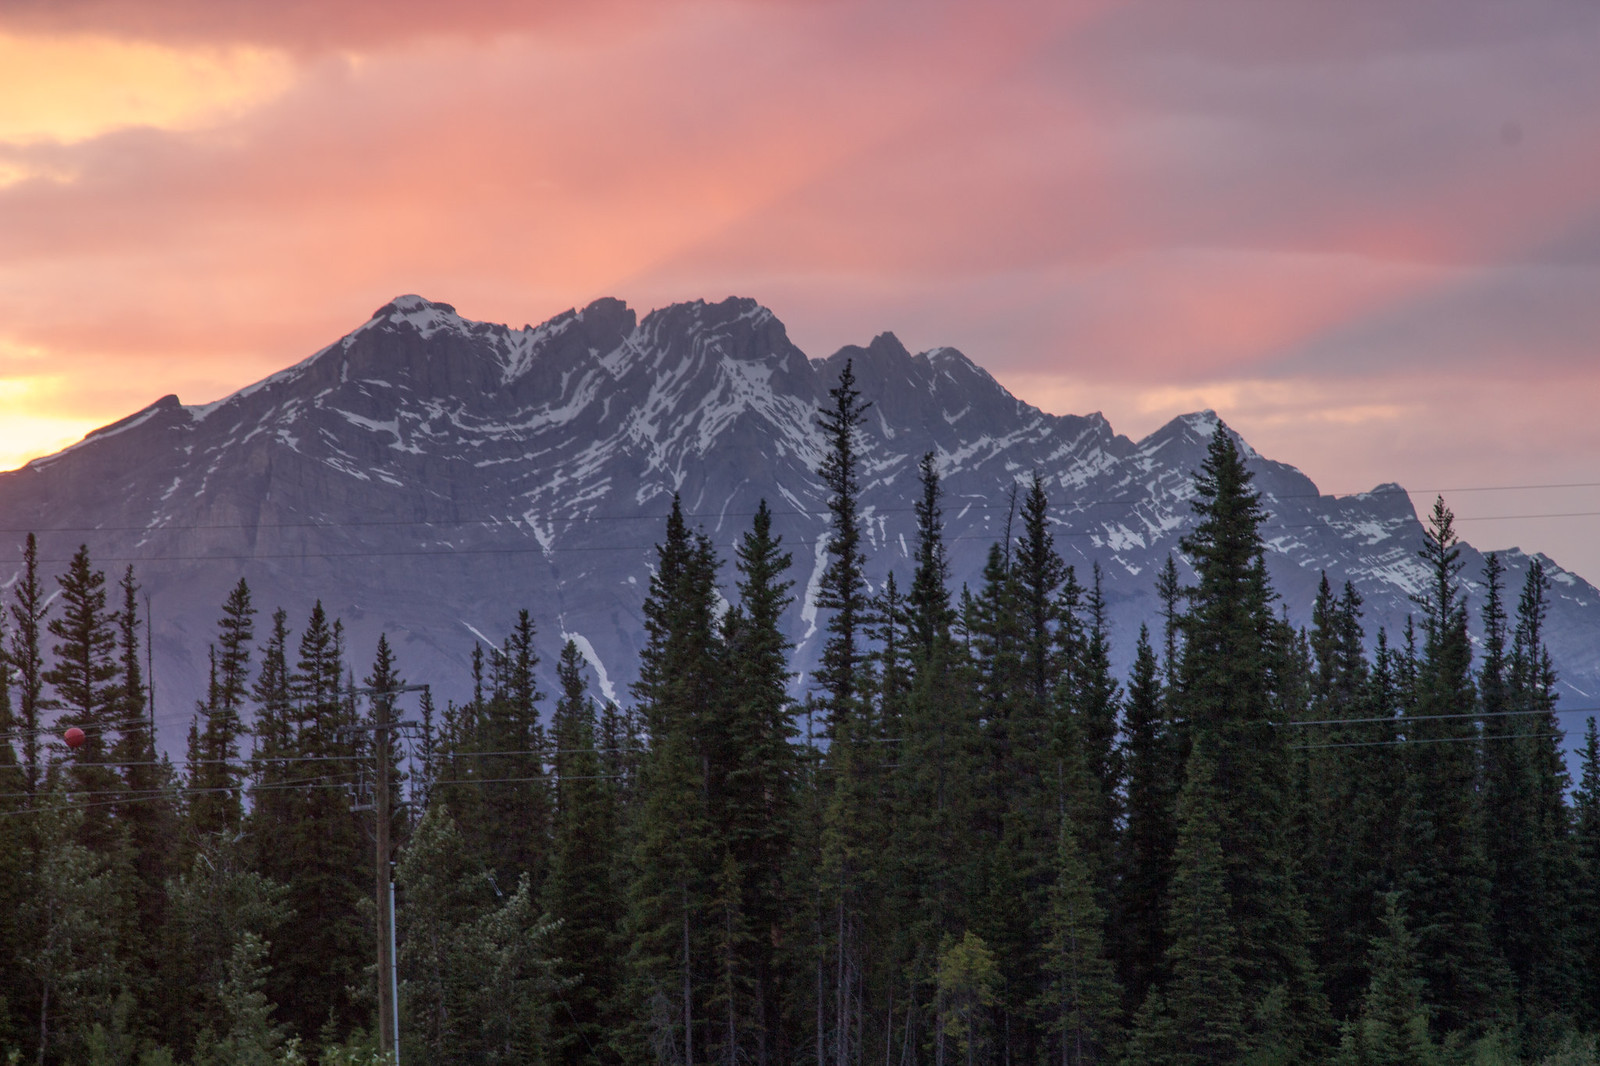 Sunset on the Bow River Loop, Canmore, Alberta